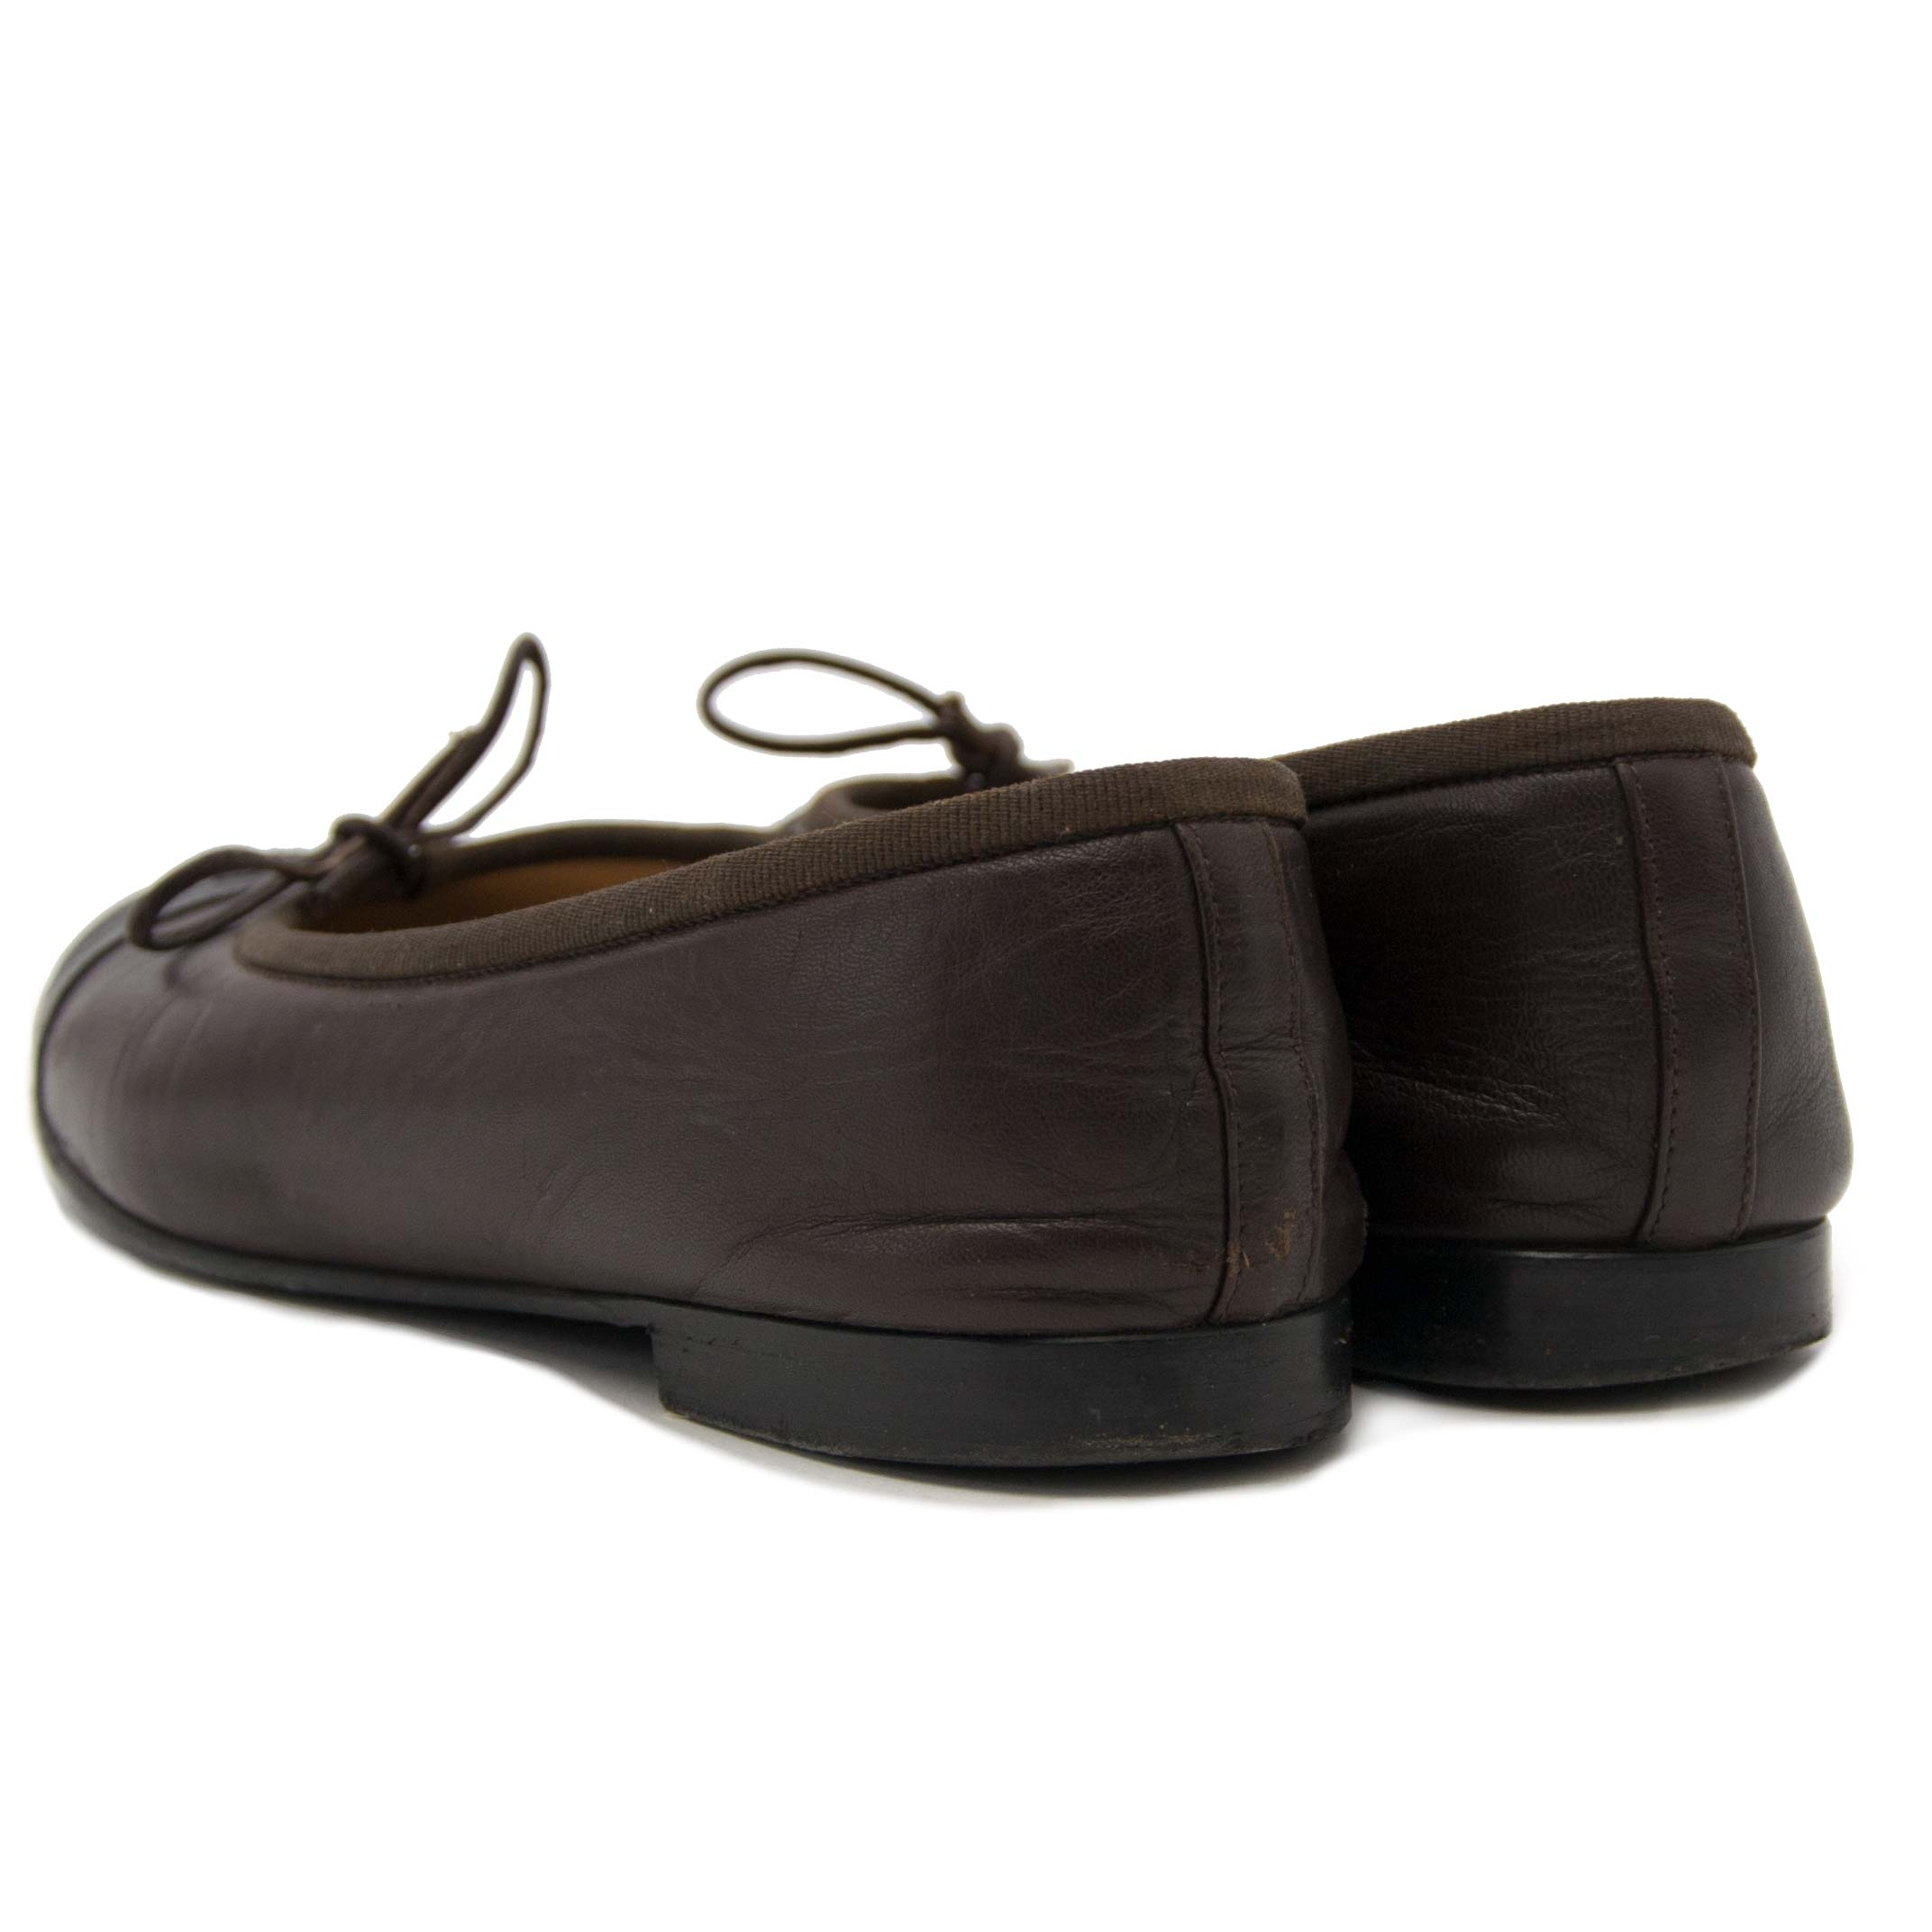 Chanel Black and Brown Ballerina Flats te koop